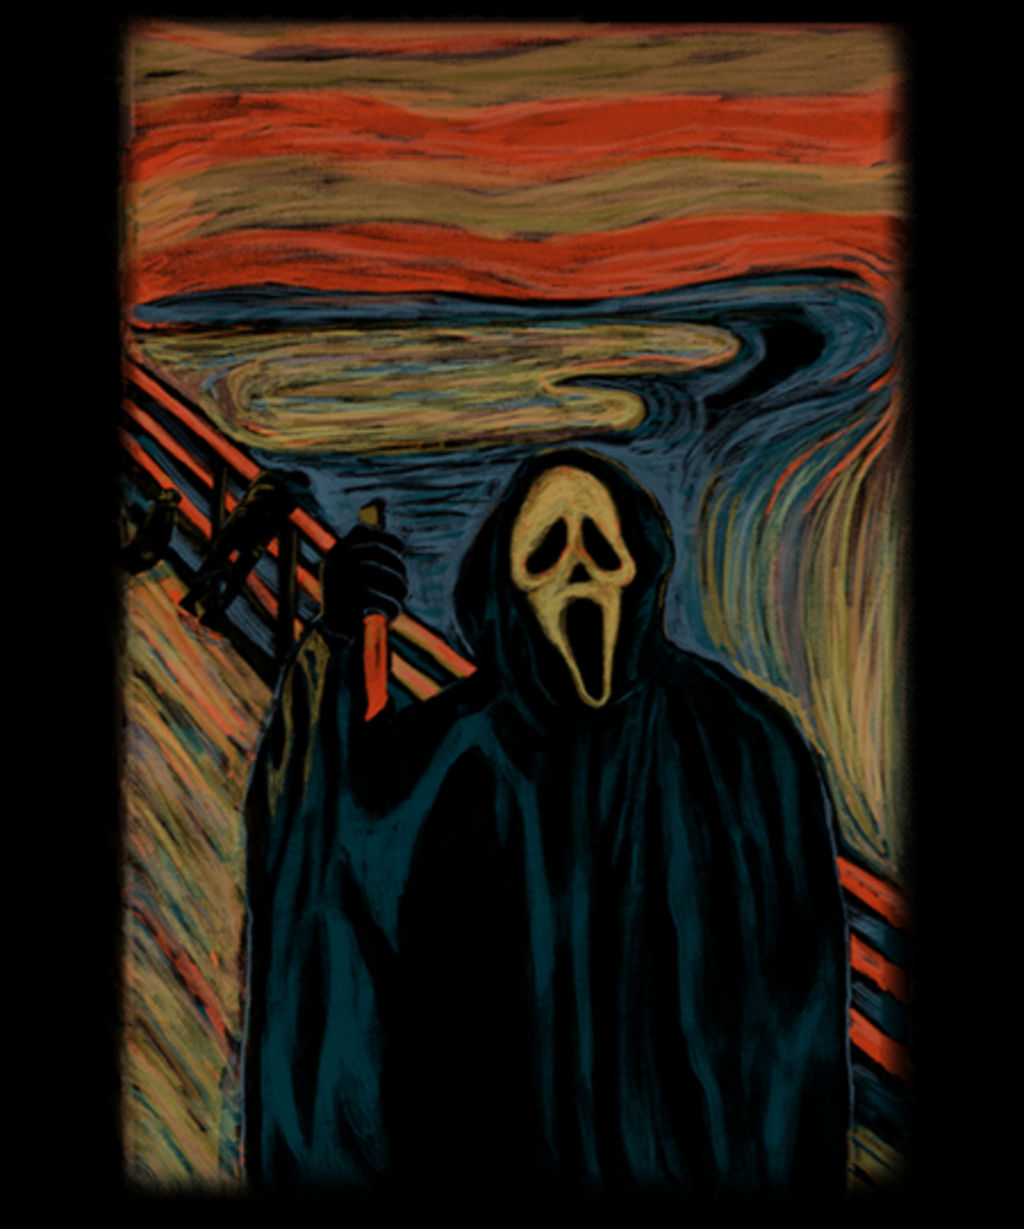 Qwertee: The Screaming Ghostface